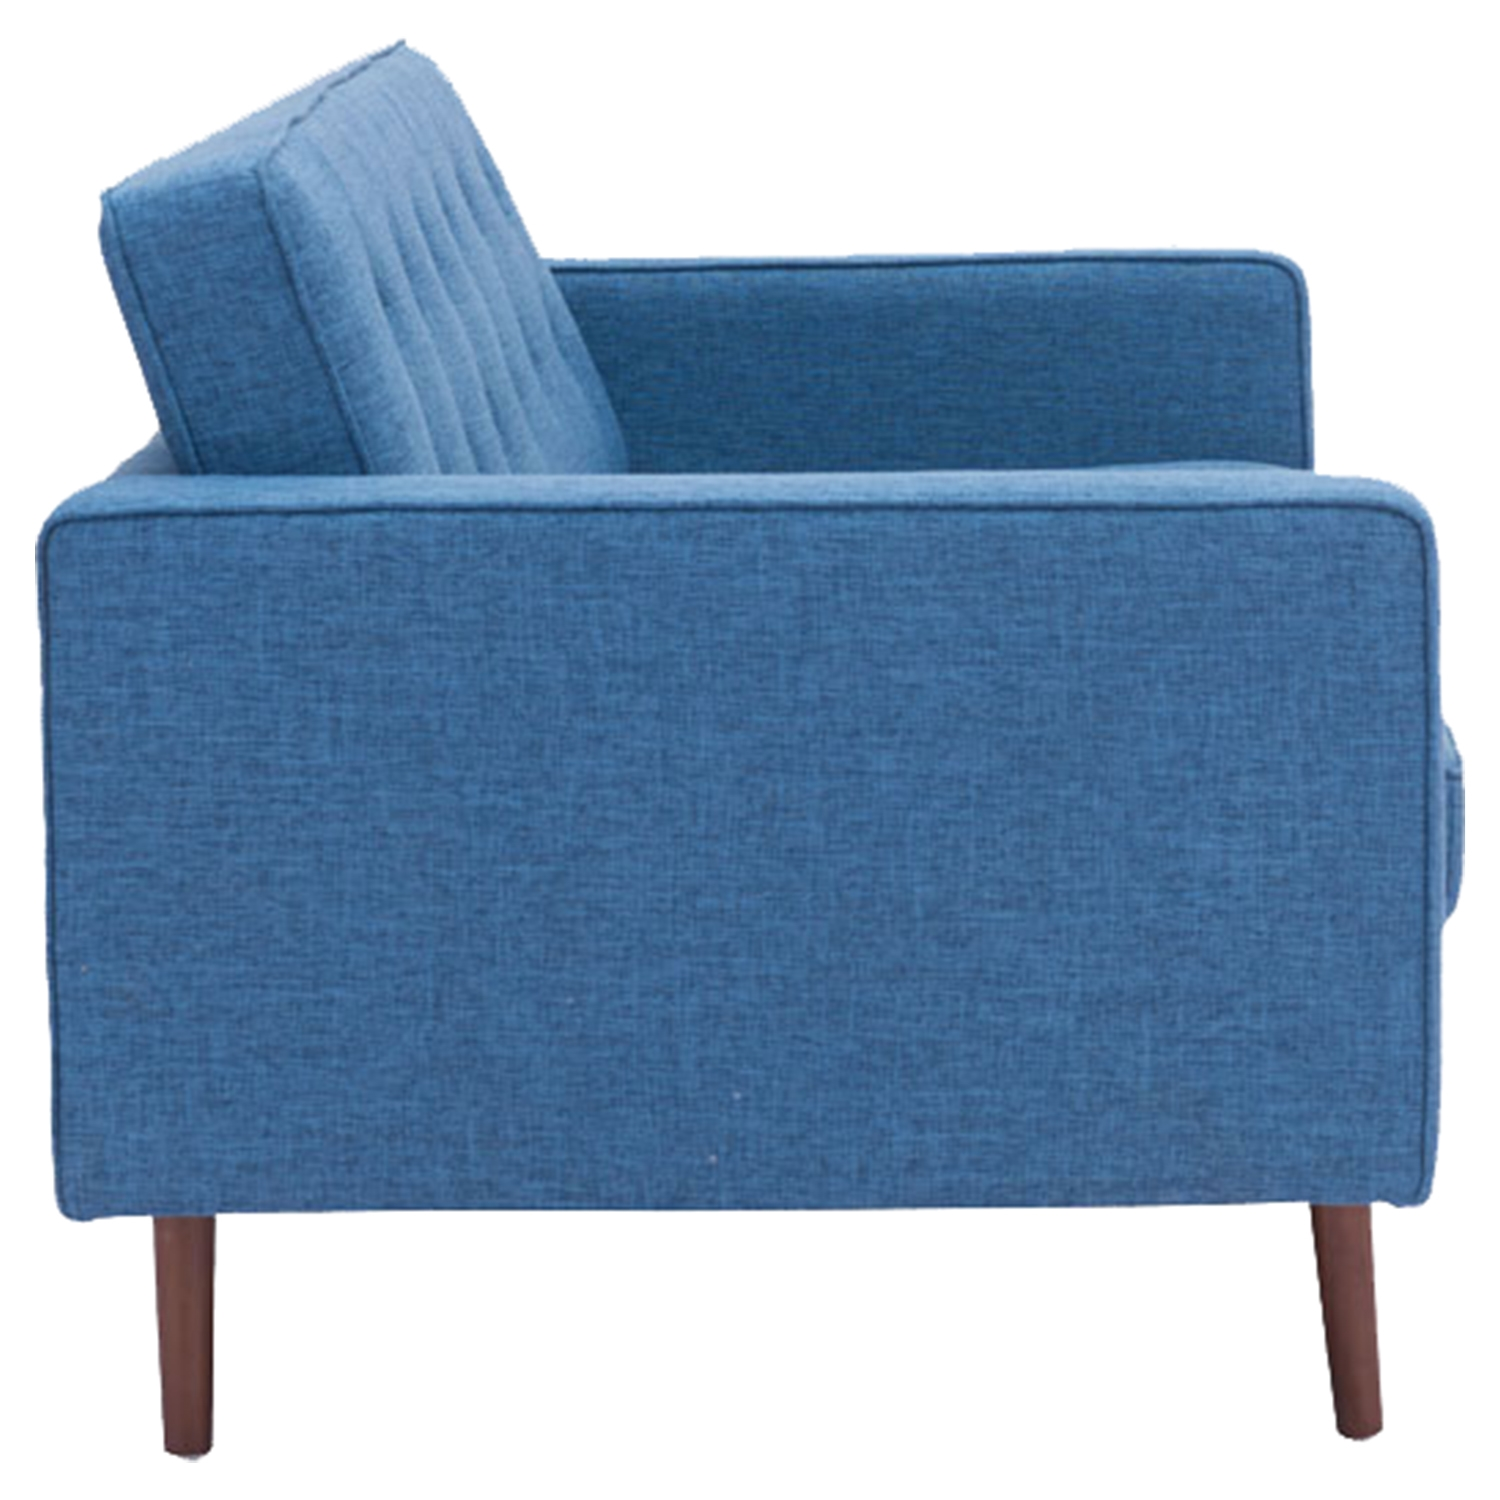 Puget Sofa - Tufted, Blue - ZM-100220